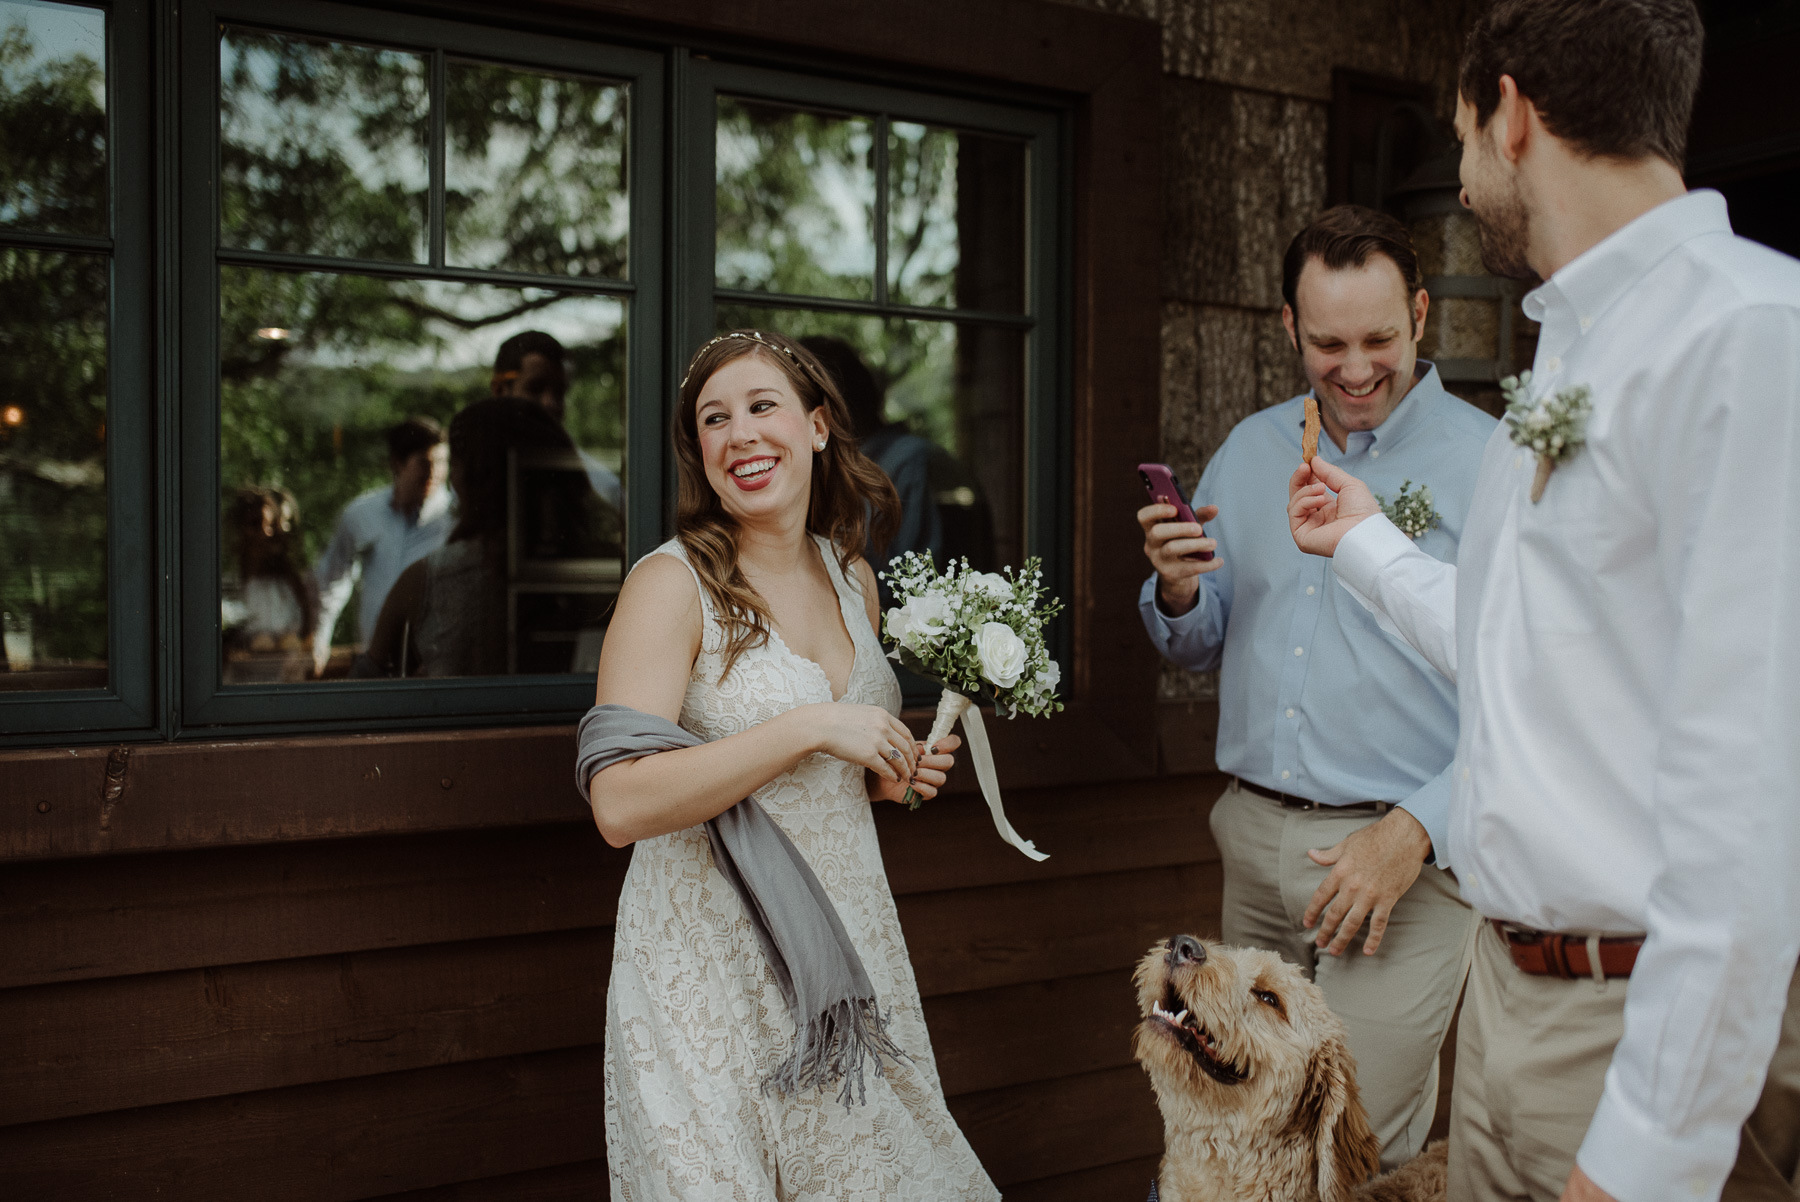 enowen-photography-elopement-kelly-blake-boone-nc (19 of 58).jpg